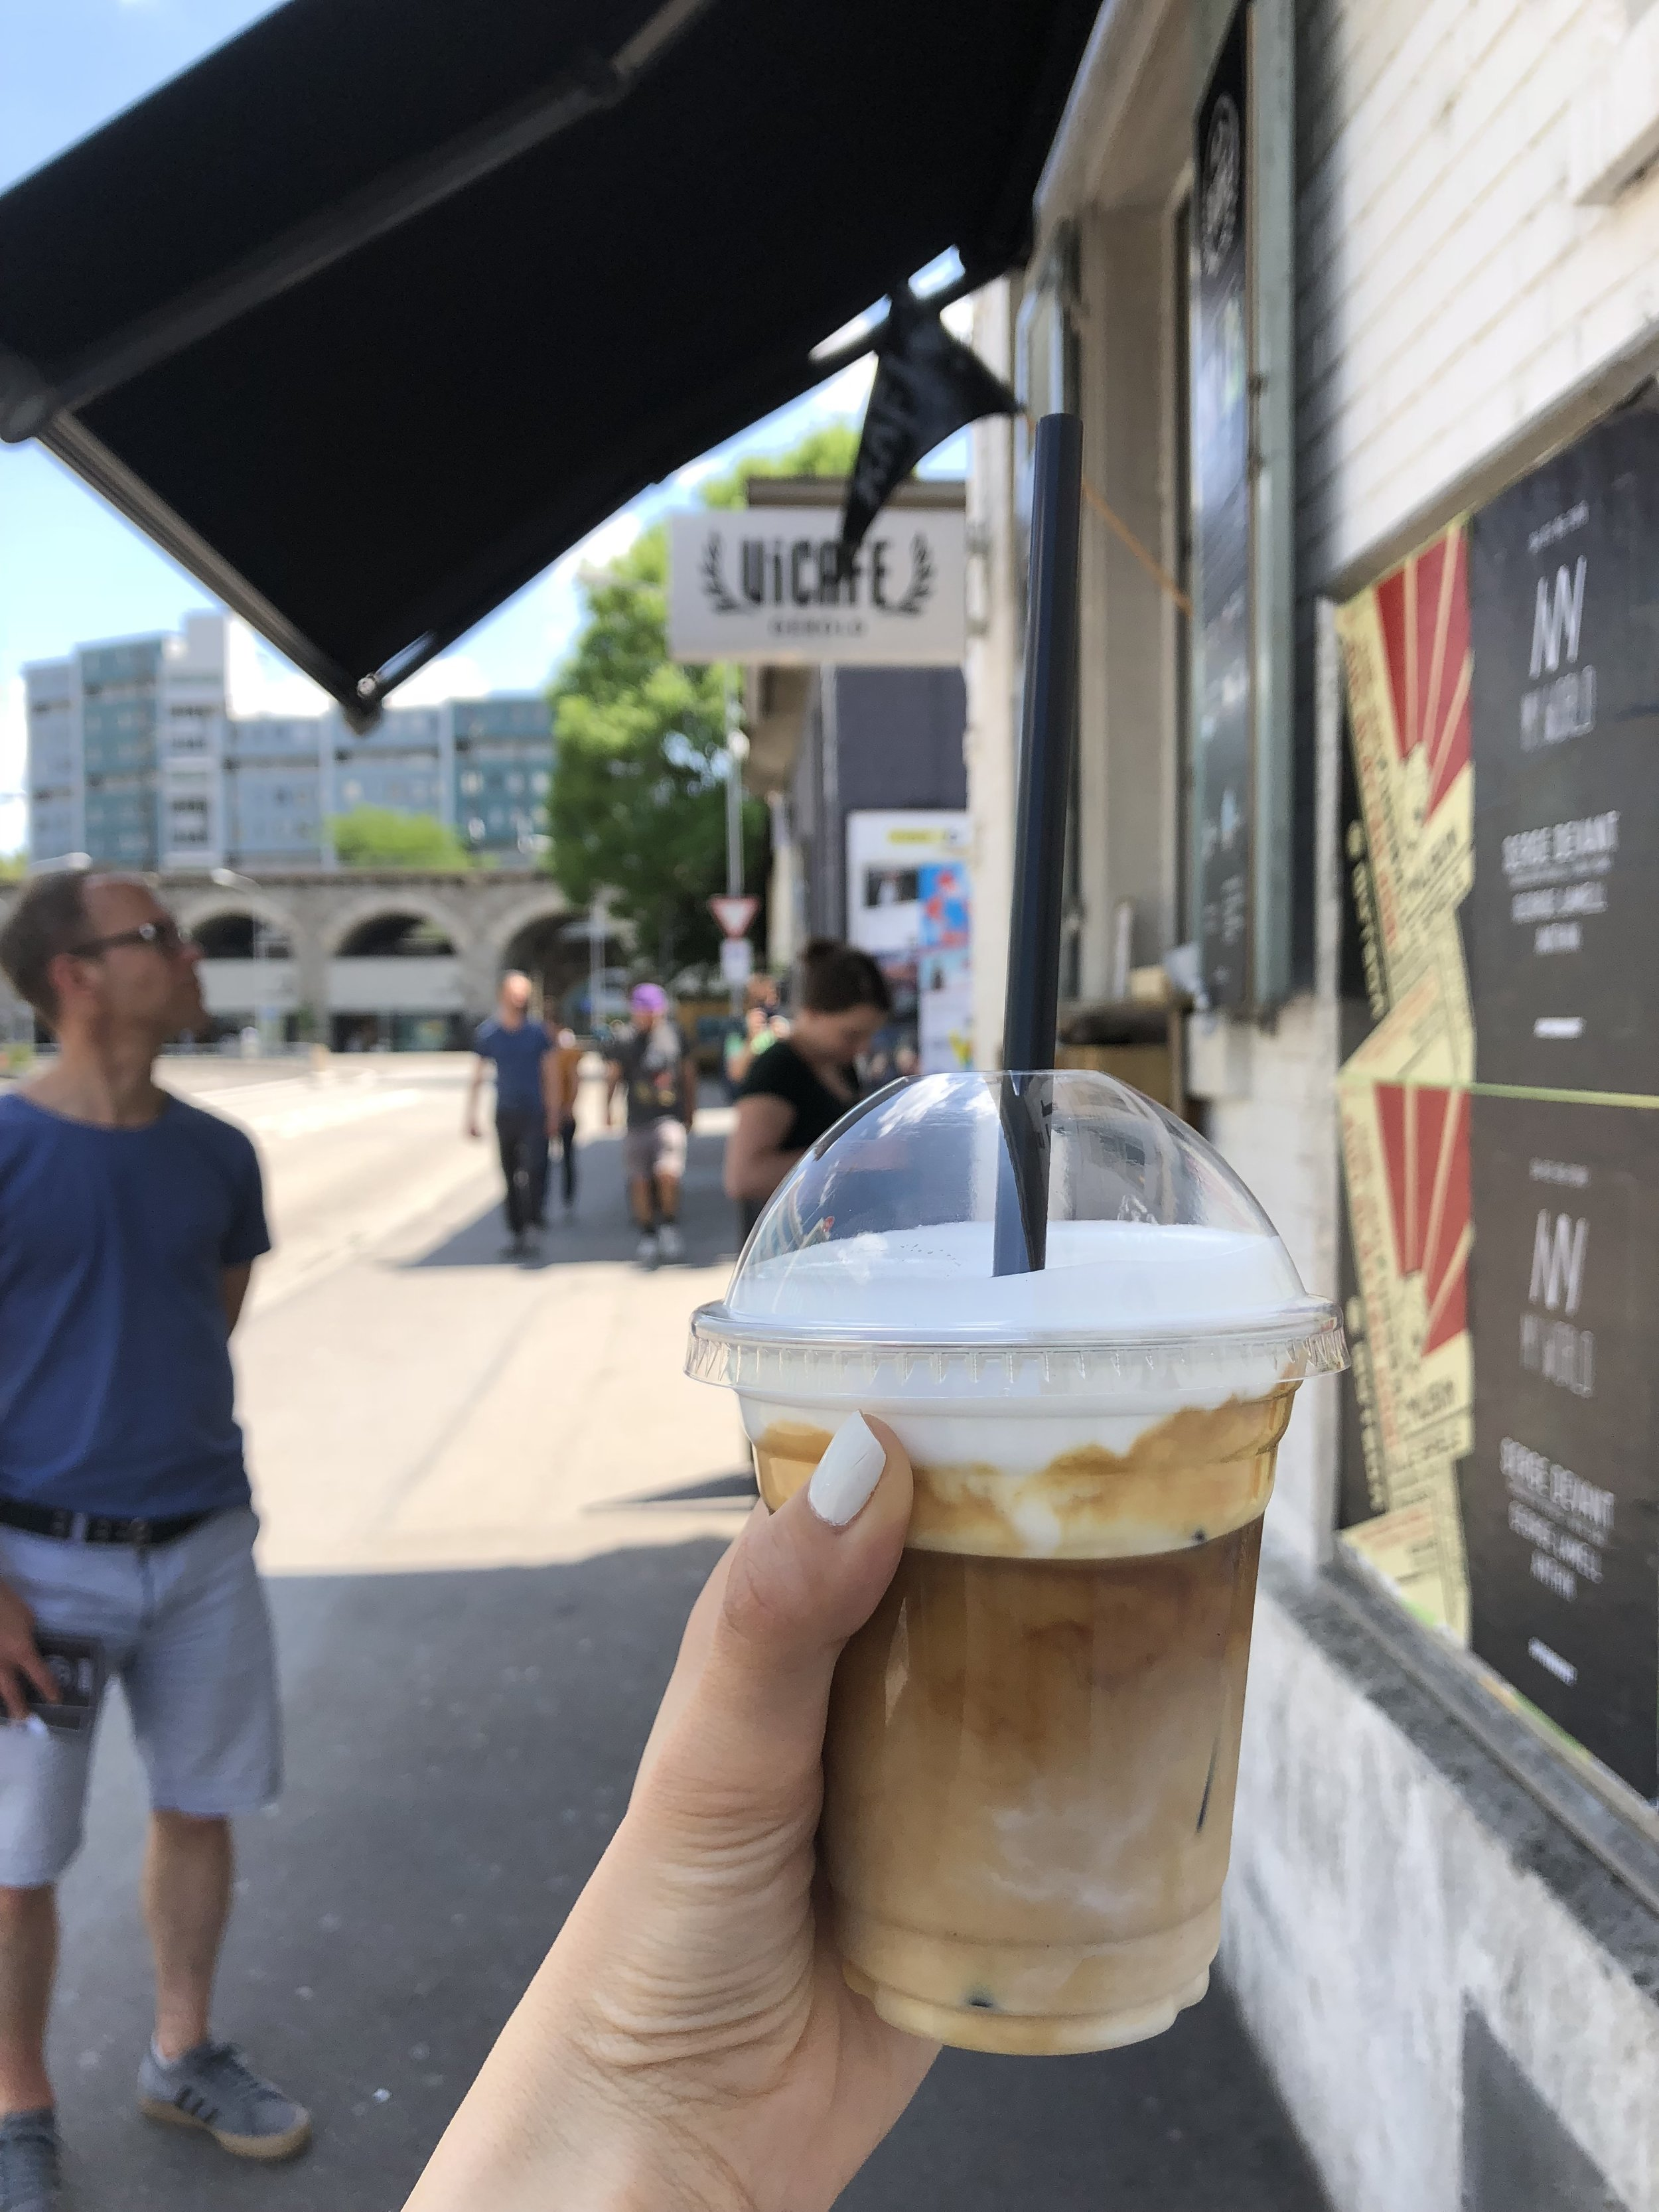 This was an amazing cup of iced cappuccino that was enjoyed on a very hot day.  Vicafe  is a coffee shop that is located in the Viaduct neighborhood (which I'll talk about later on in the post). This was worth the stop!